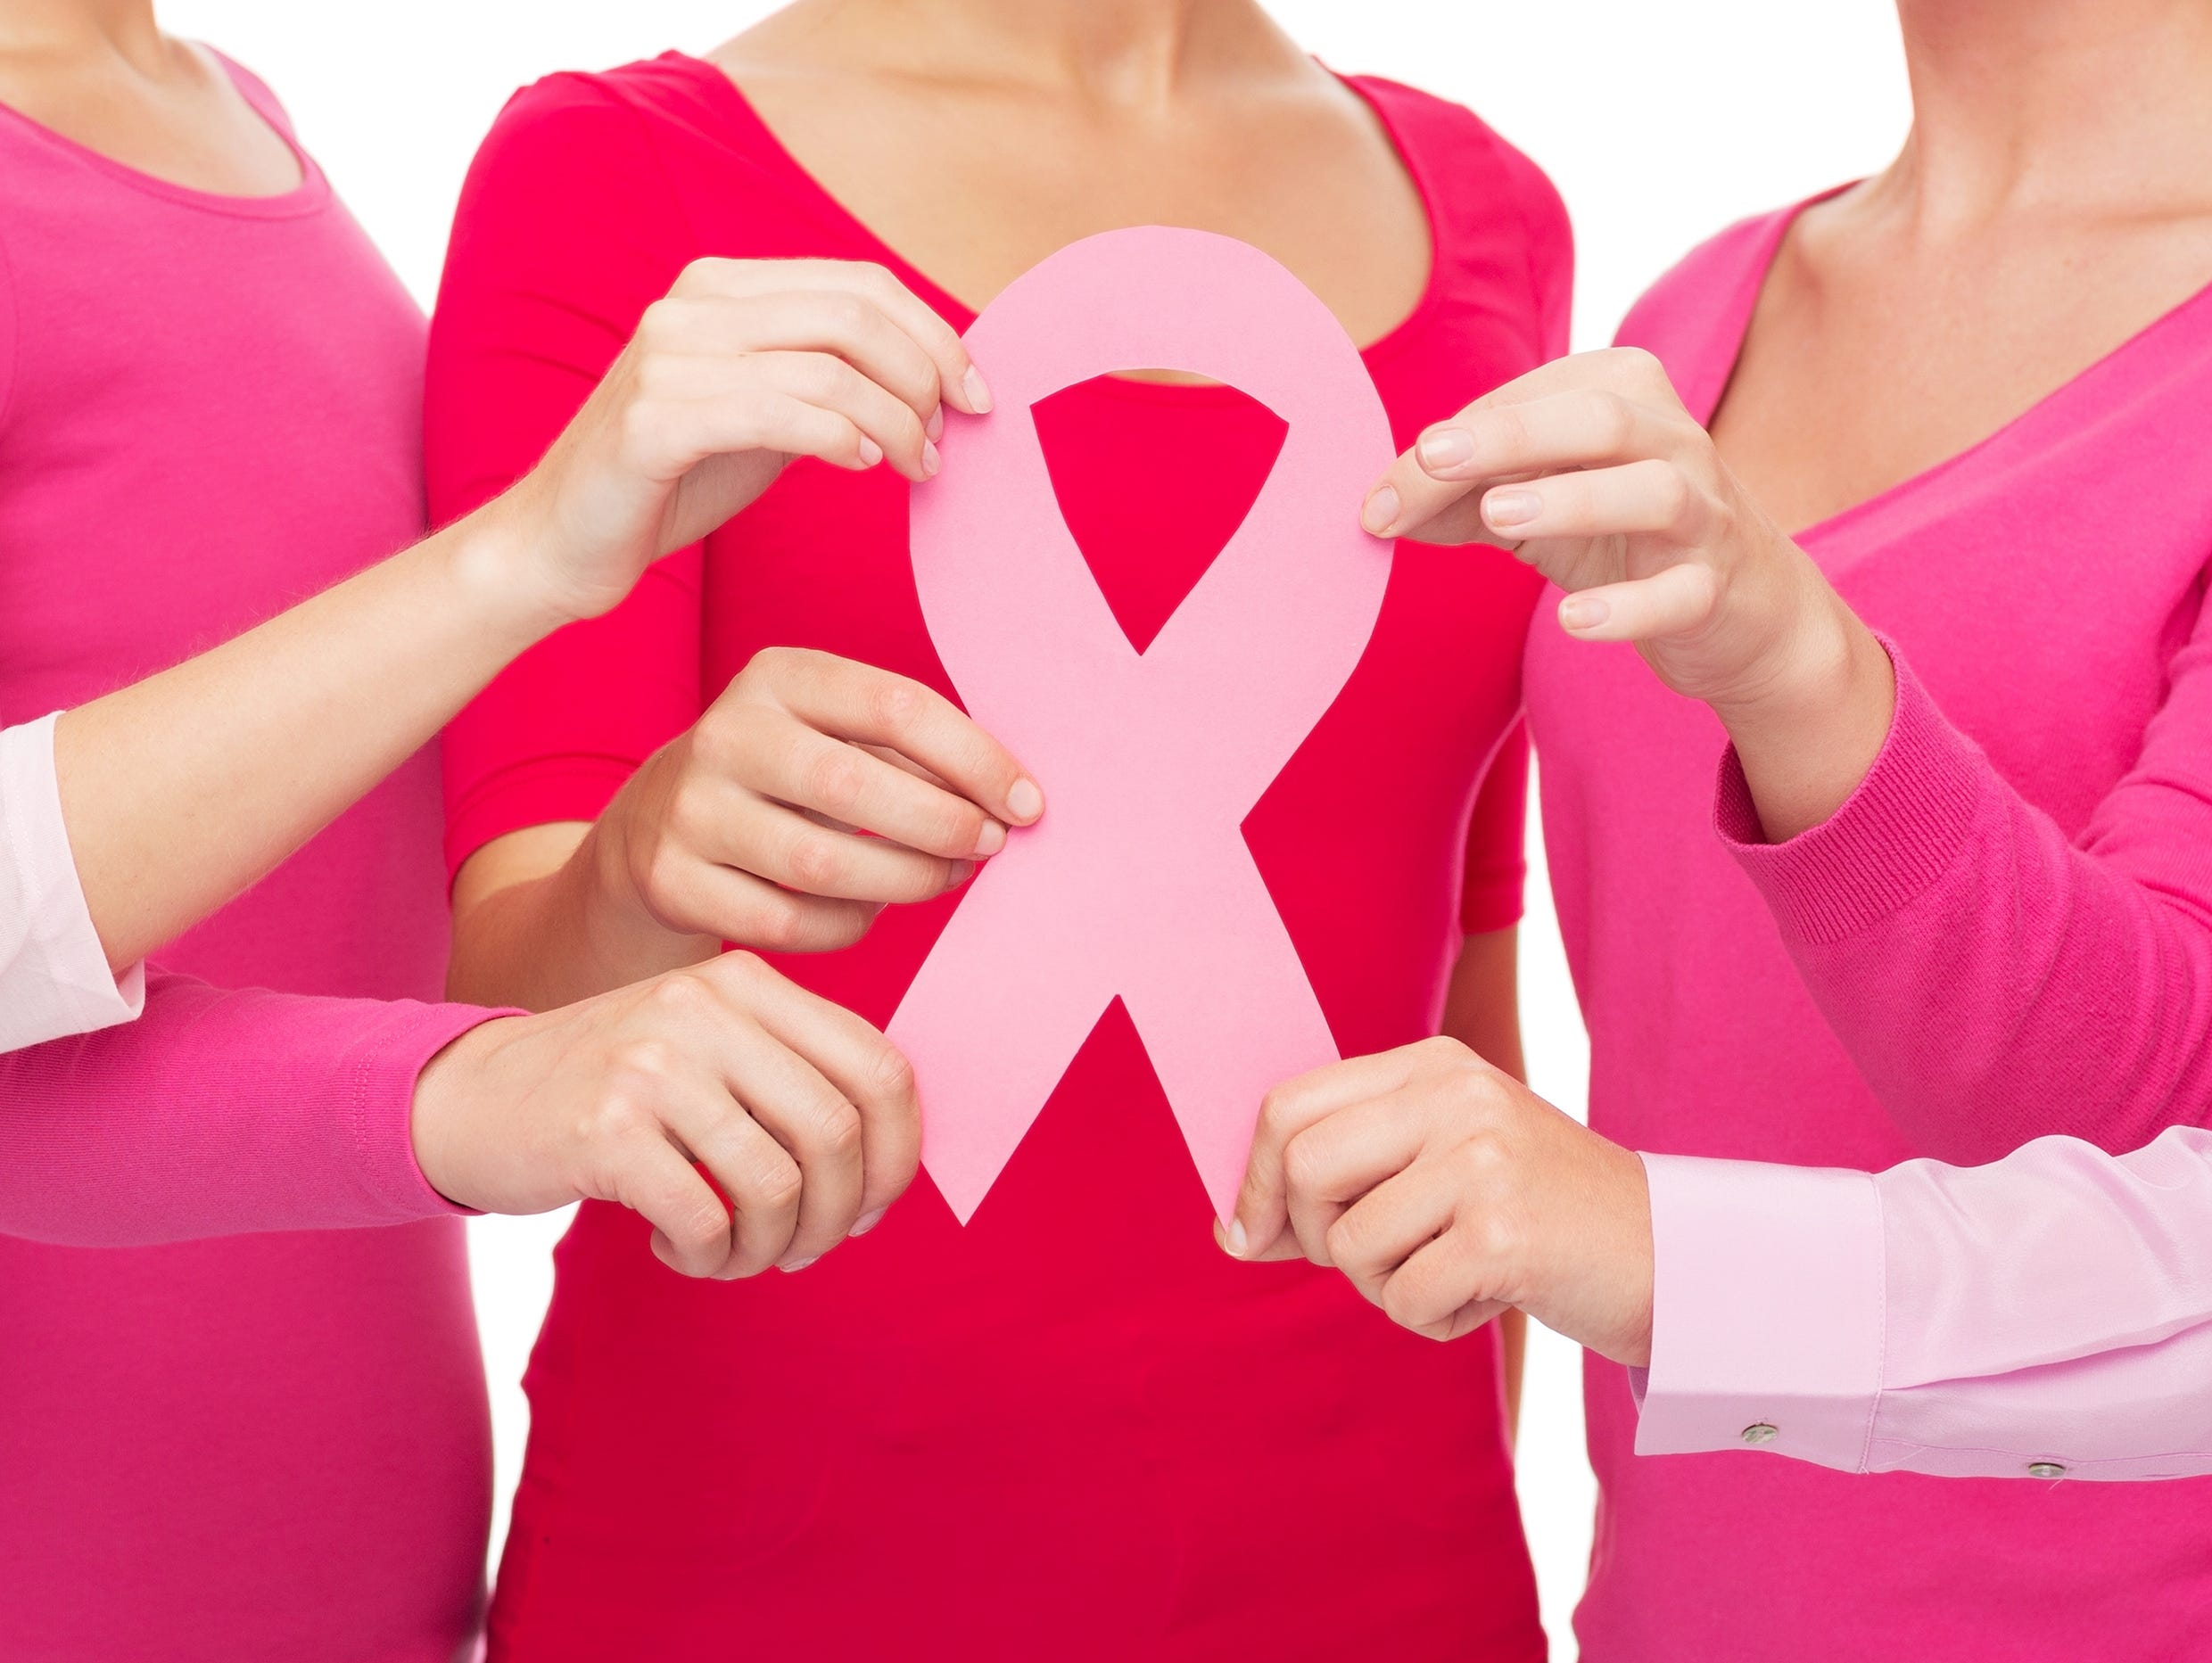 October is breast cancer awareness month, test your knowledge on the topic with our trivia quiz.